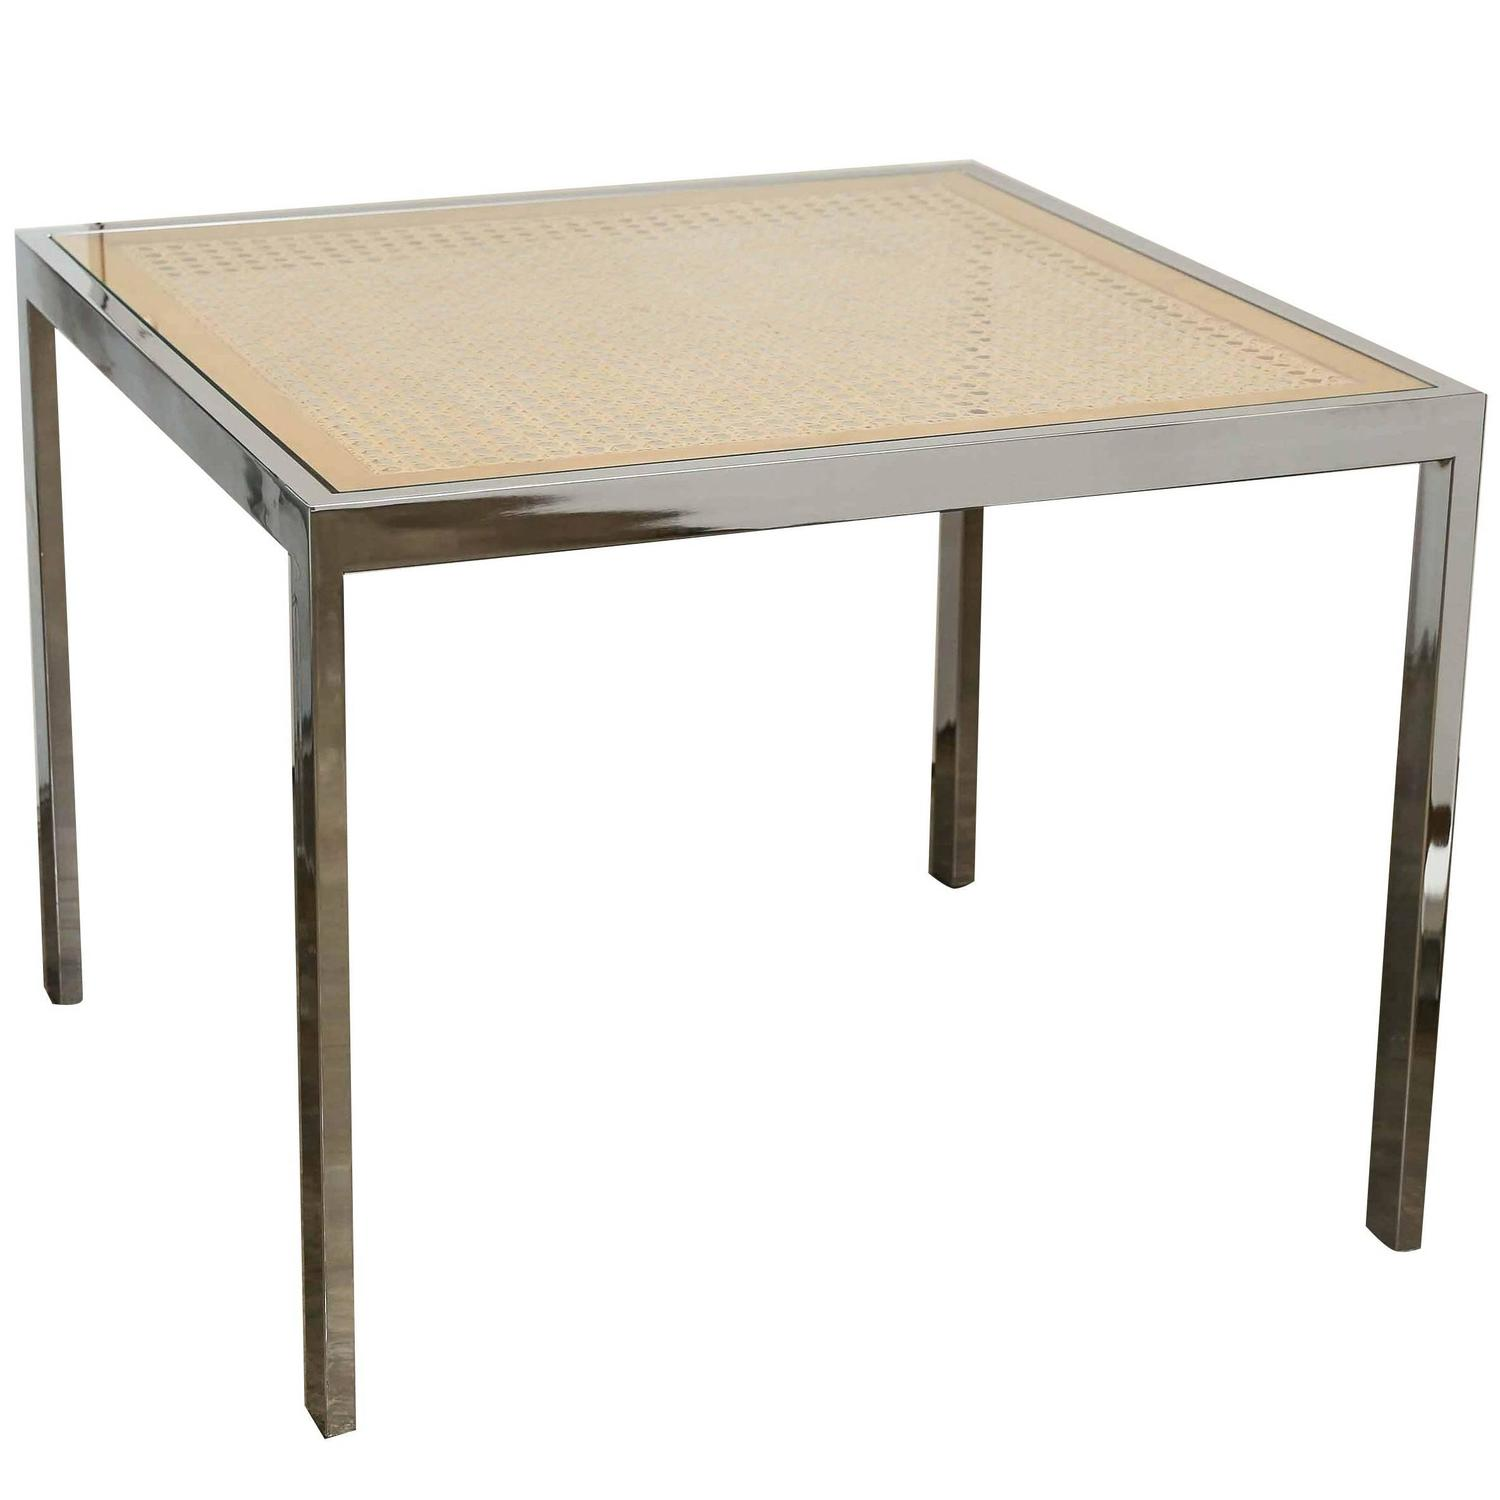 Superb Mid Century Modern Chrome, Glass And Wicker Game Or Dining Table For Sale  At 1stdibs